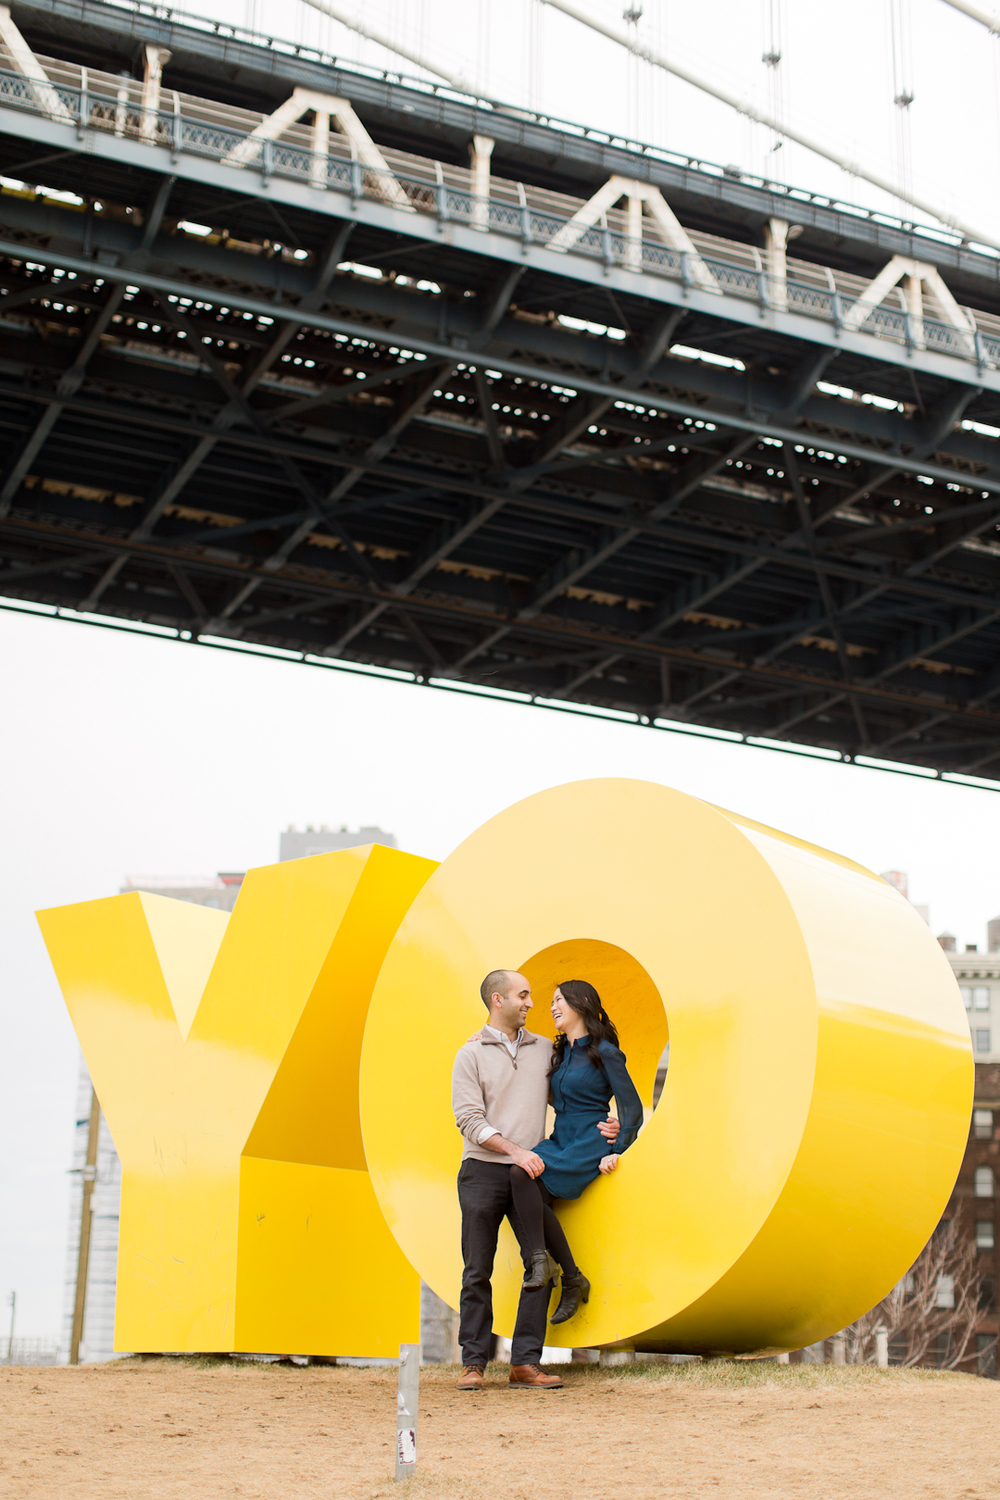 Melissa Kruse Photography - Kristine & David Engagement Photos-23.jpg